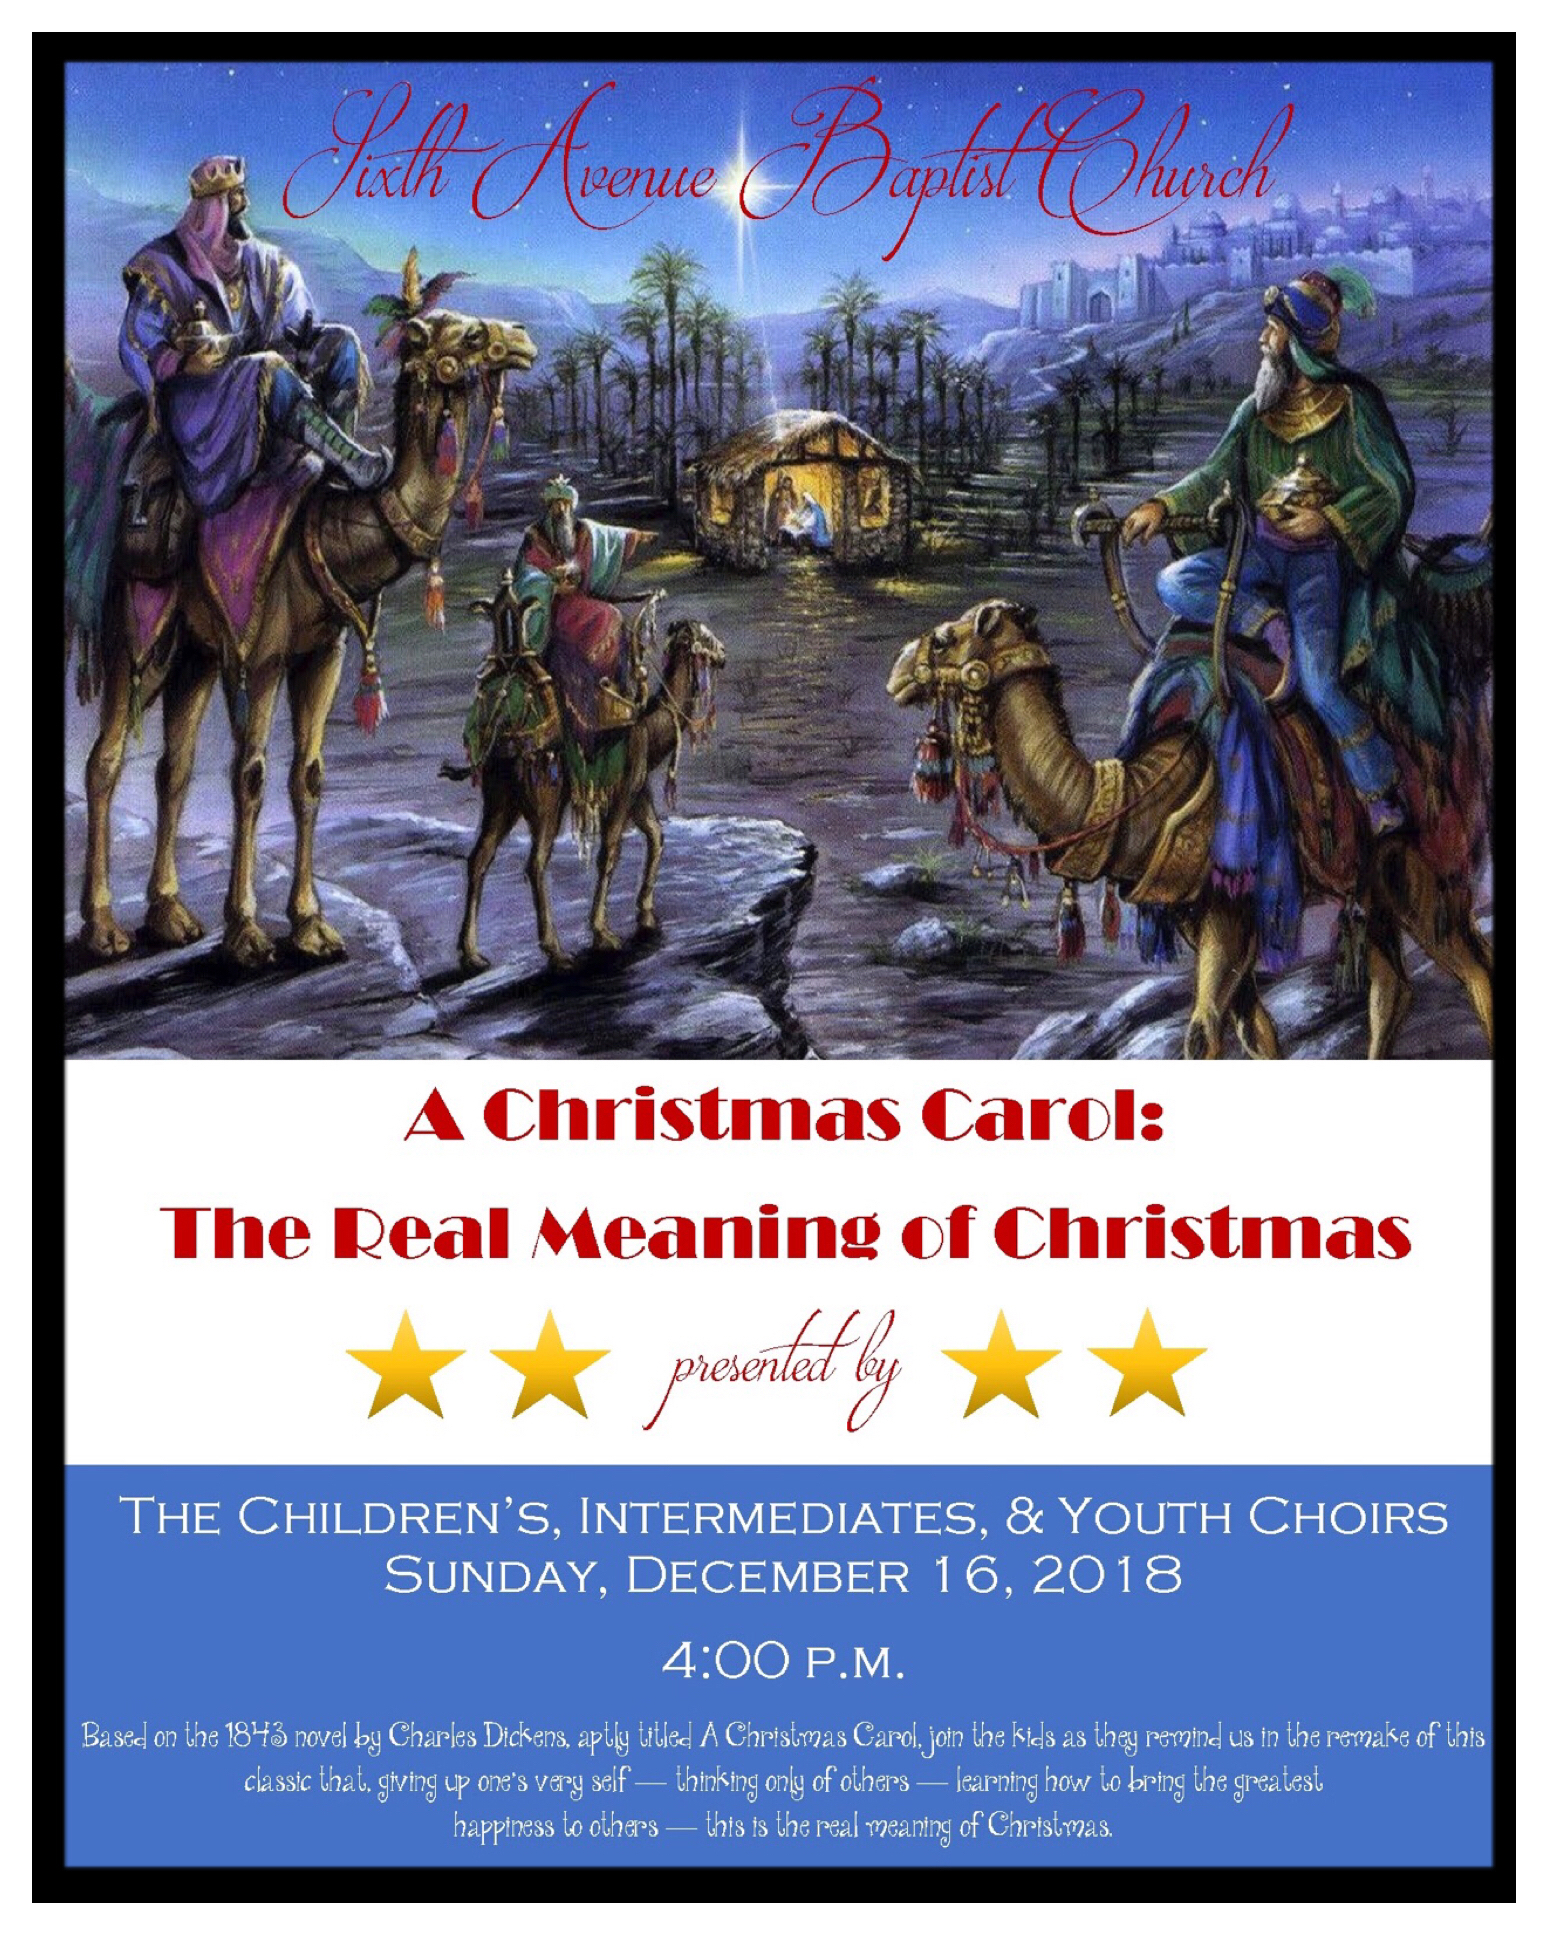 Christmas Carol Meaning.A Christmas Carol The Real Meaning Of Christmas